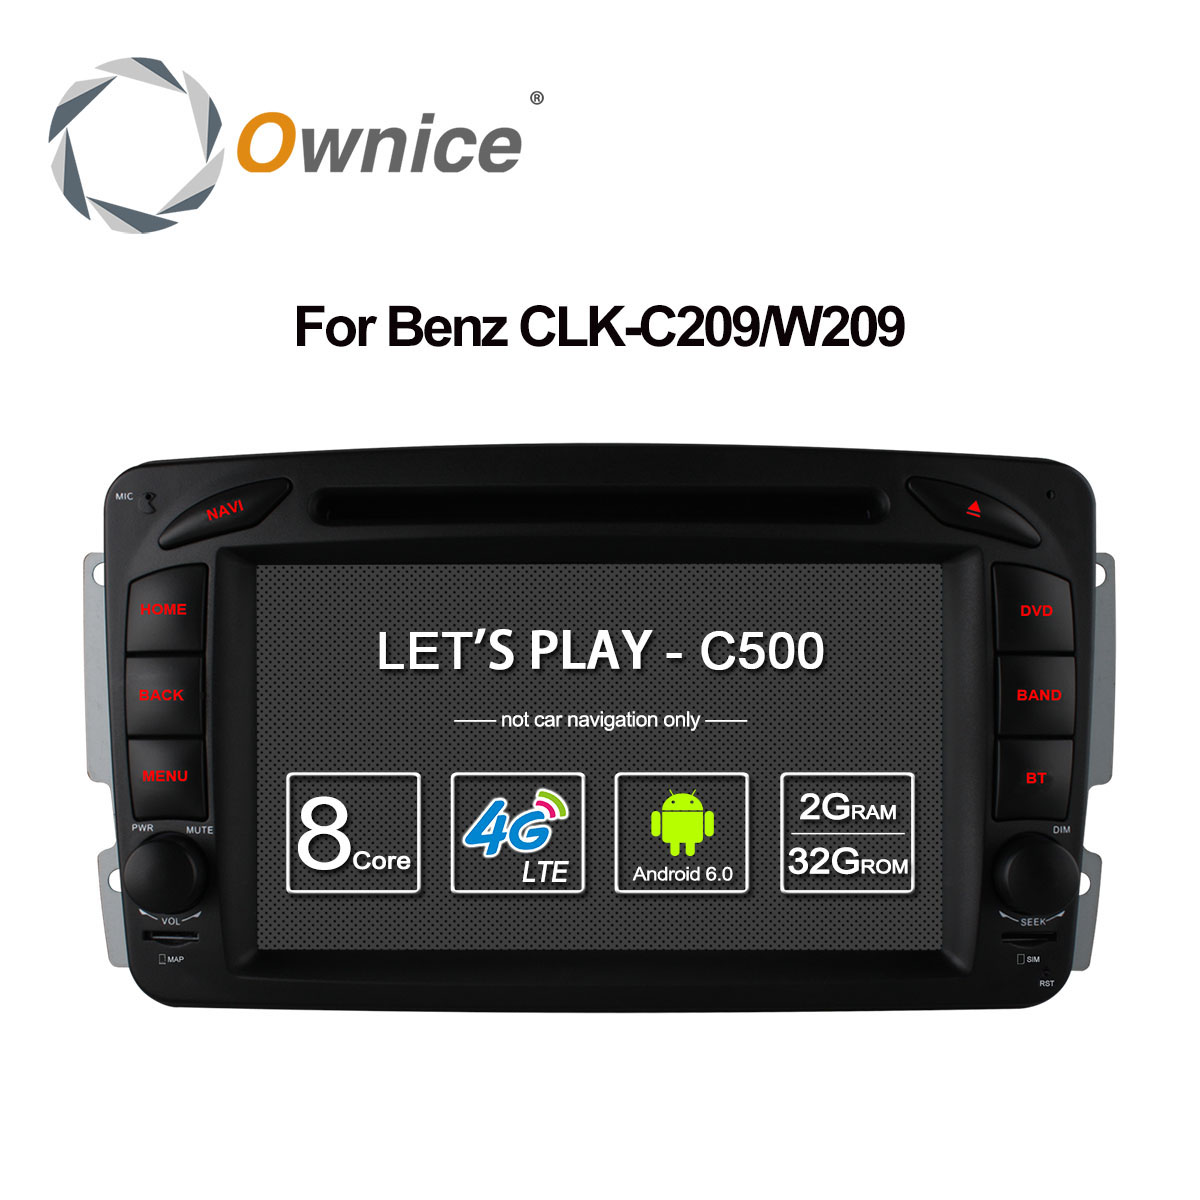 4G SIM LTE <font><b>Android</b></font> 6.0 Octa 8 Core Car DVD Player <font><b>GPS</b></font> For <font><b>Mercedes</b></font> W209 <font><b>W203</b></font> W168 M ML W163 W463 Viano W639 Vito Vaneo 32G ROM image